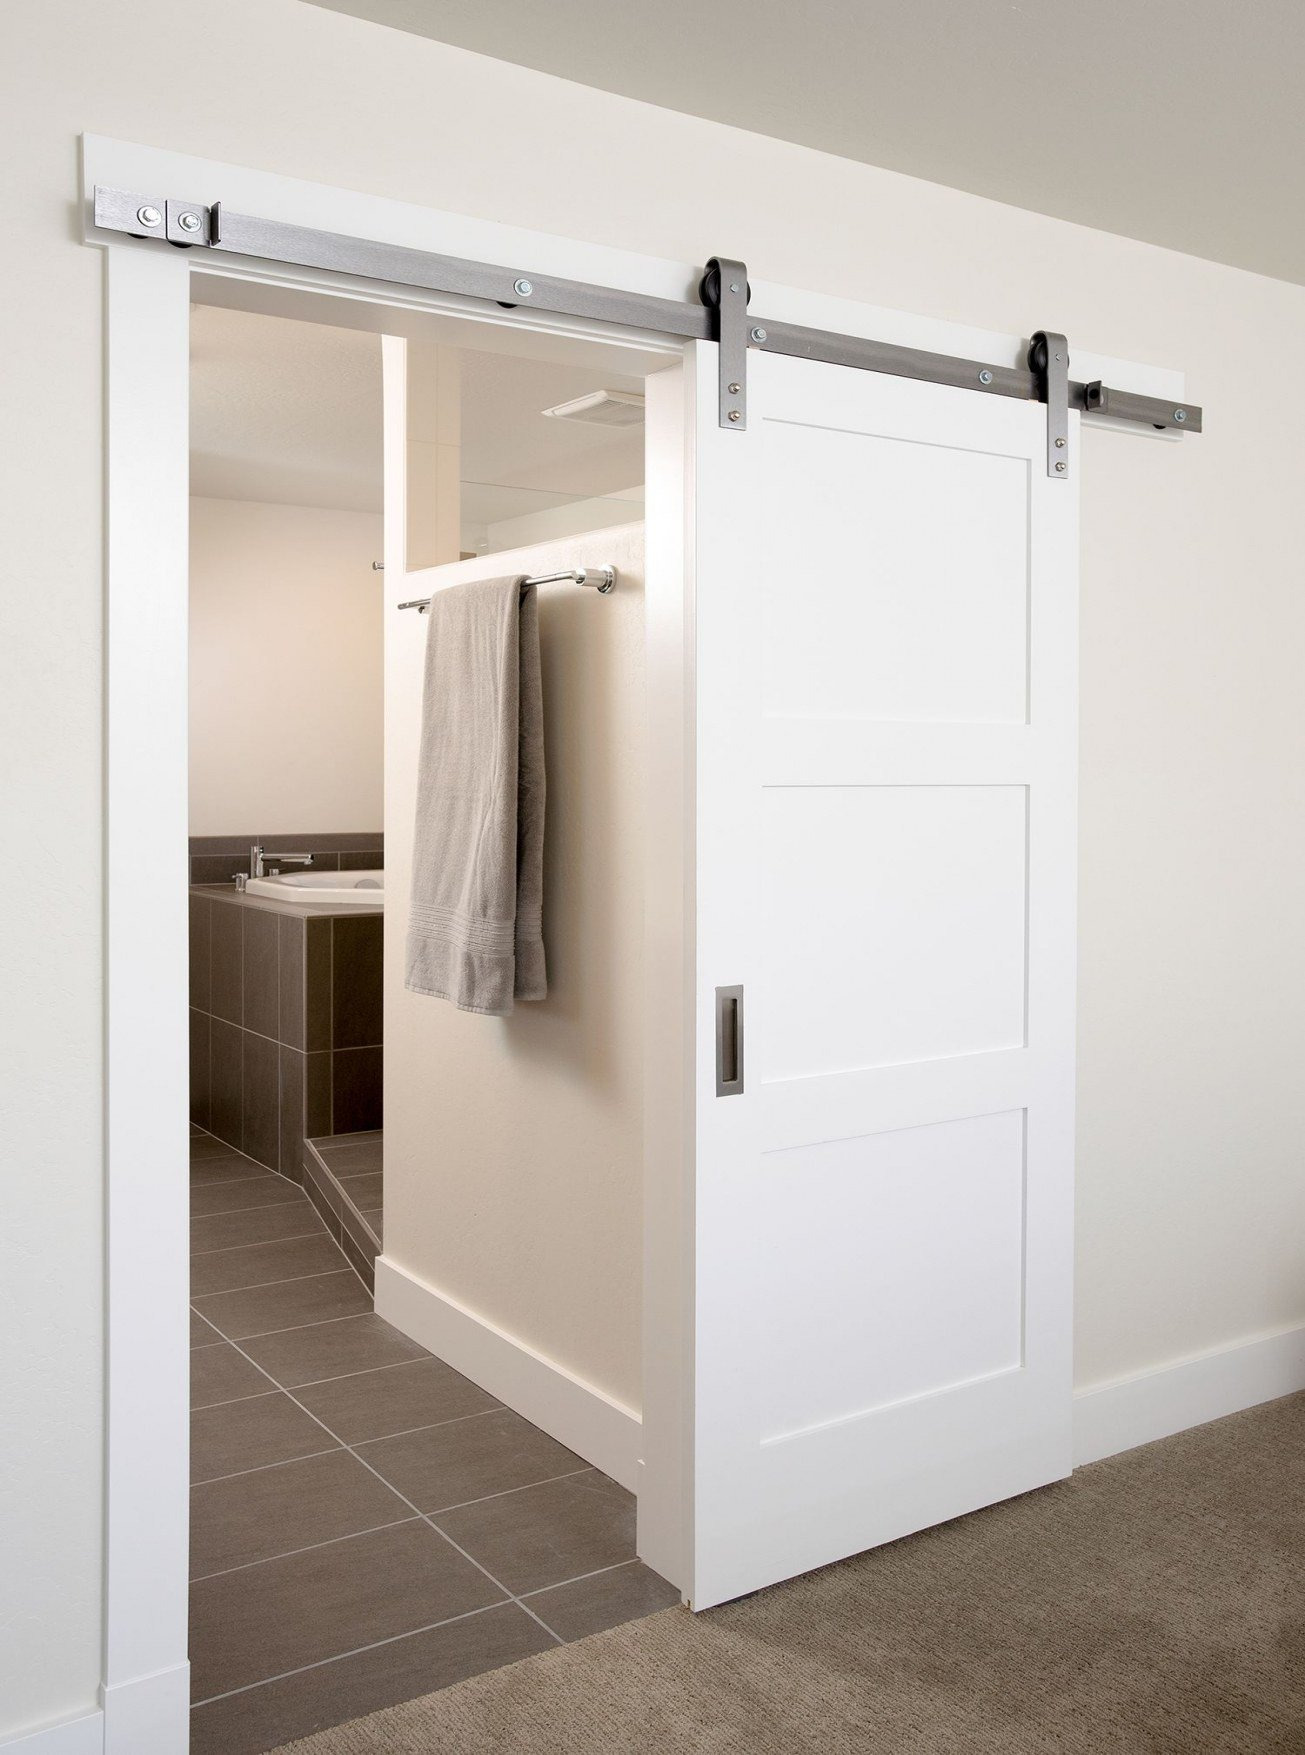 Sliding Barn Door for Bedroom Elegant Barn Doors for Closets This Contemporary Sliding Interior